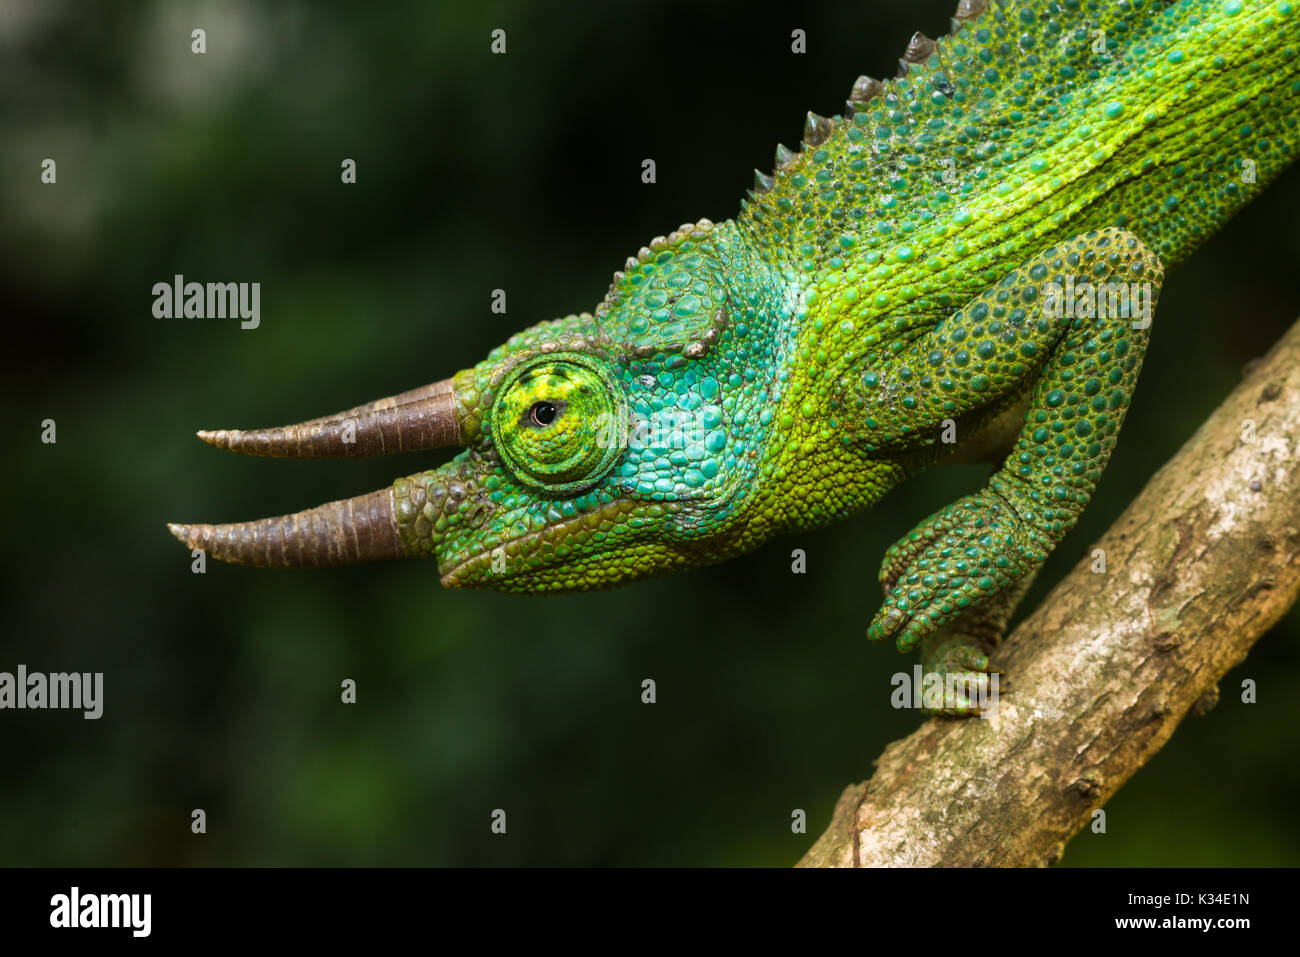 Adult male Jackson's chameleon (Trioceros jacksonii jacksonii) on branch - Stock Image